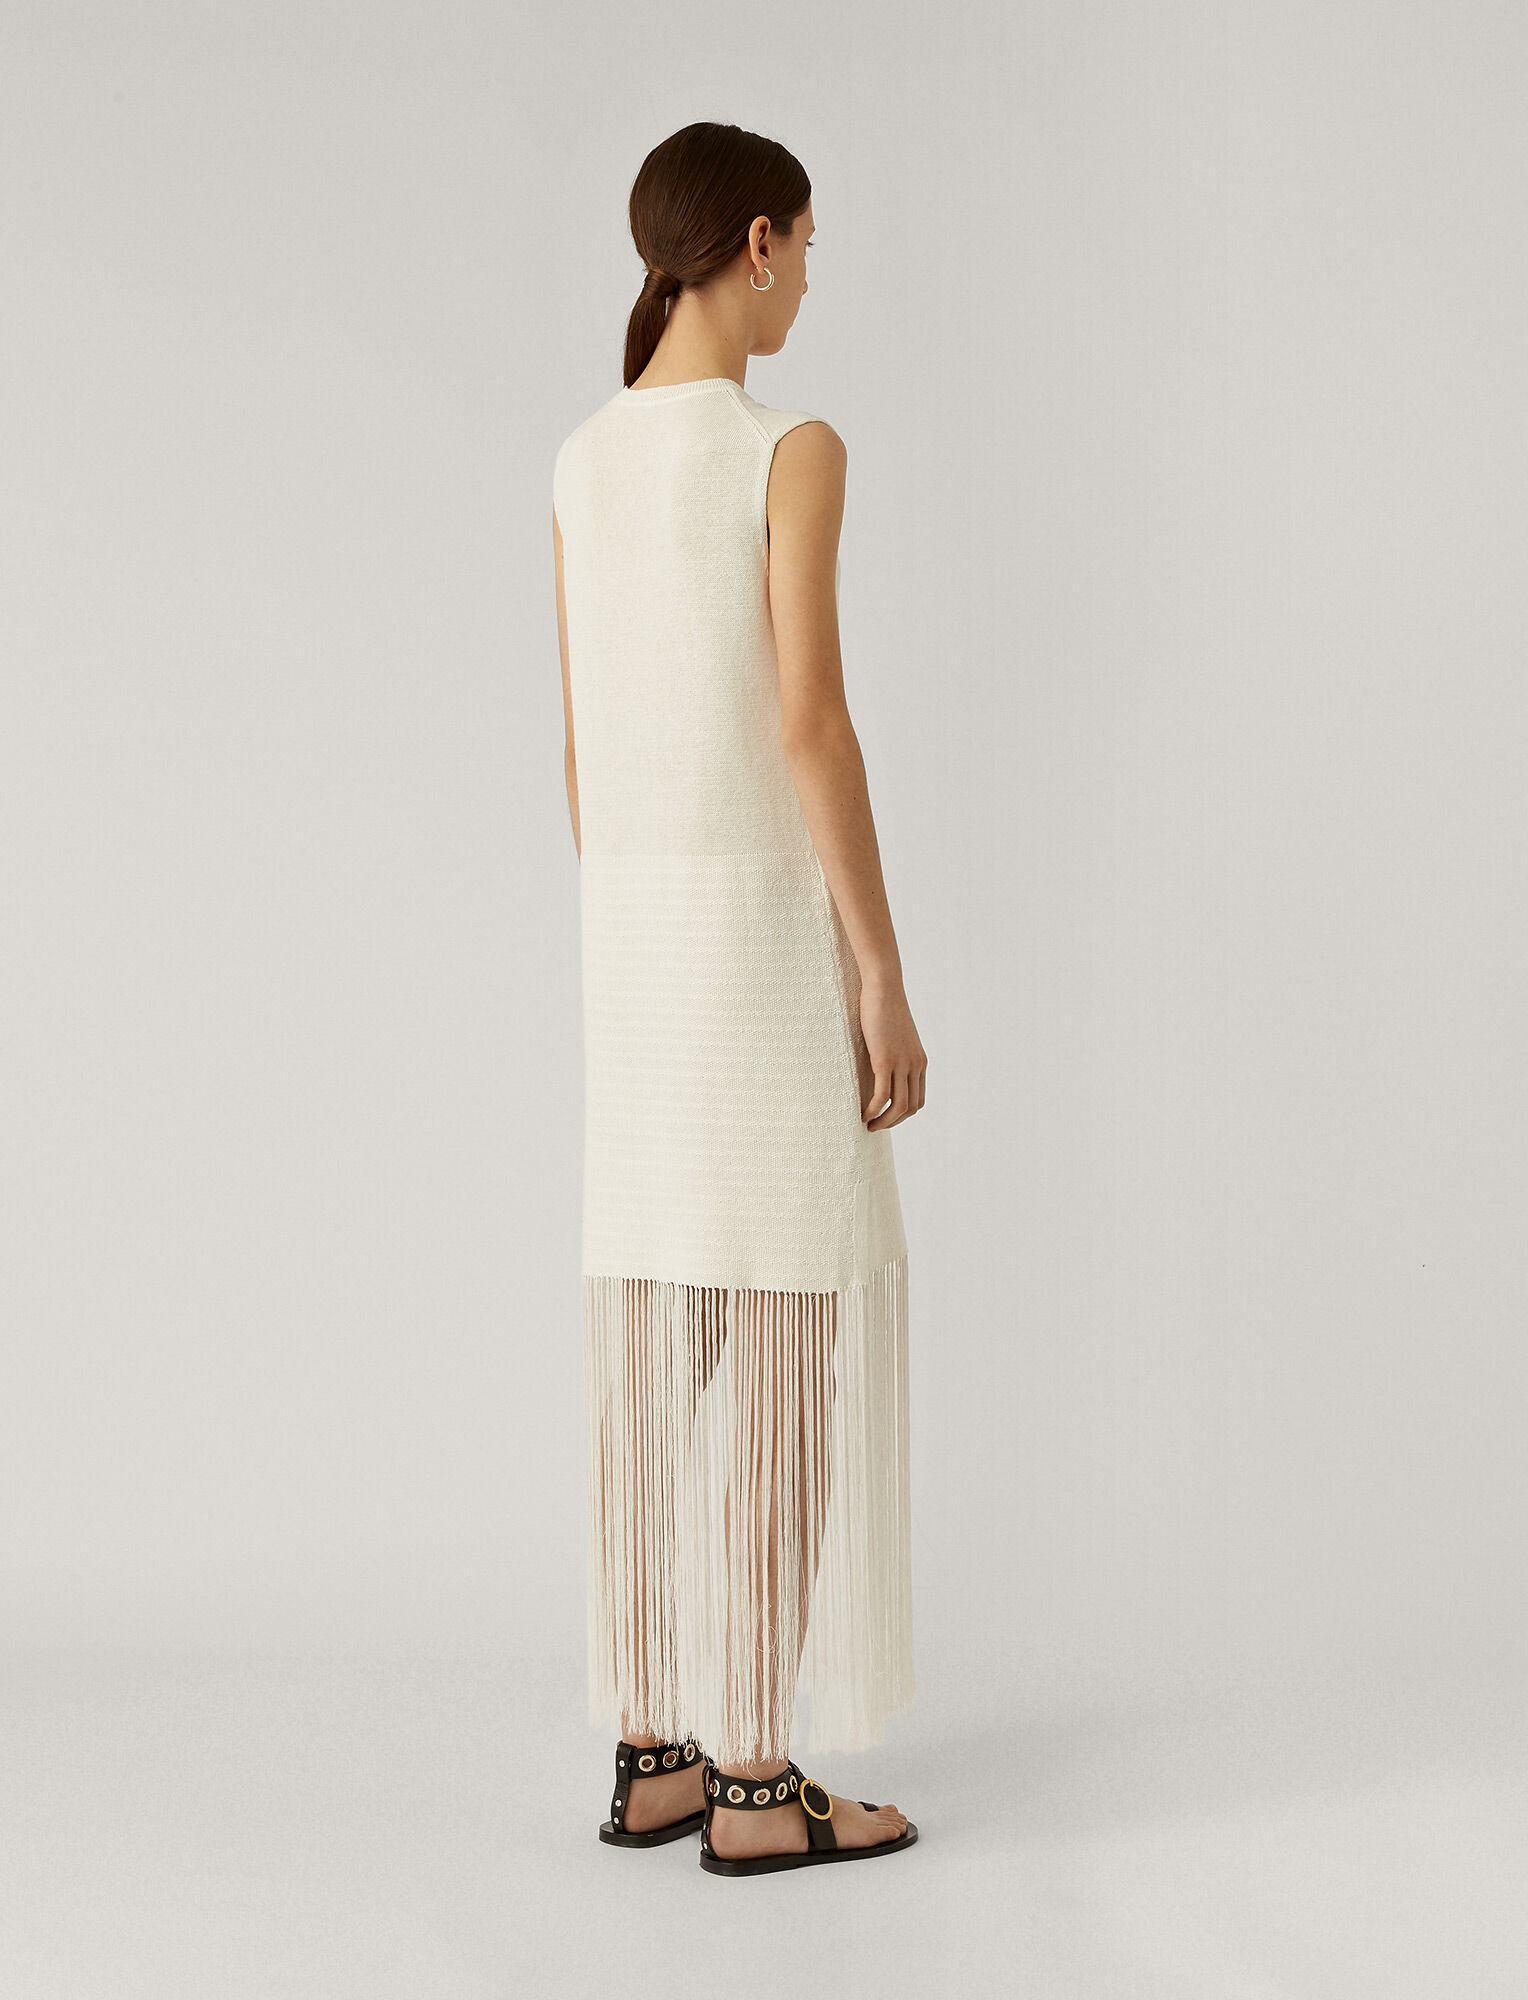 Joseph, Darya Crispy Cotton Dress, in WHITE